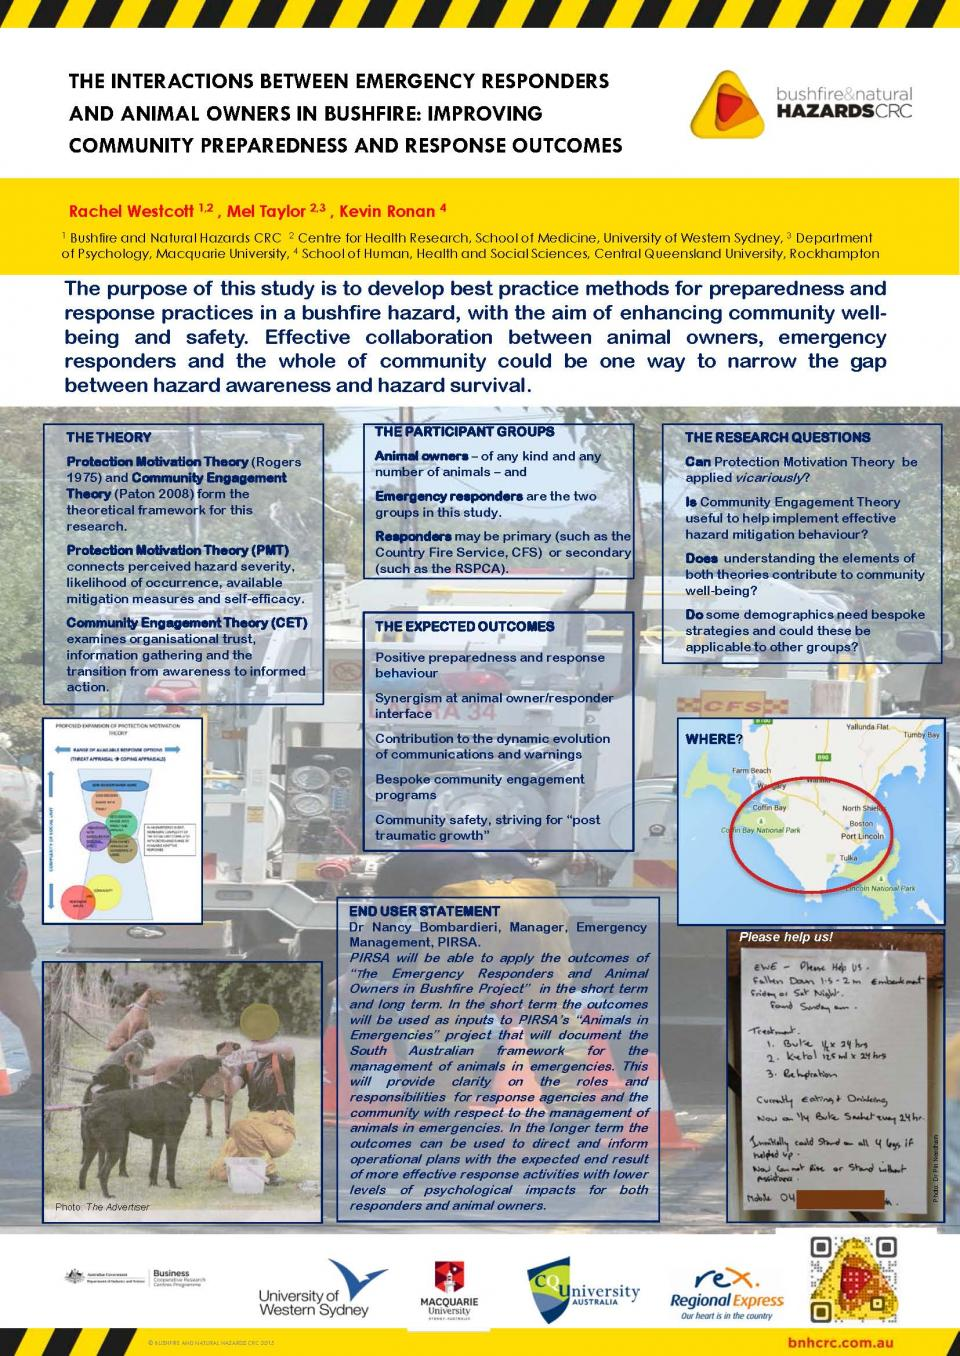 The Interactions Between Emergency Responders and Animal Owners in Bushfire: Improving Community Preparedness and Response Outcomes